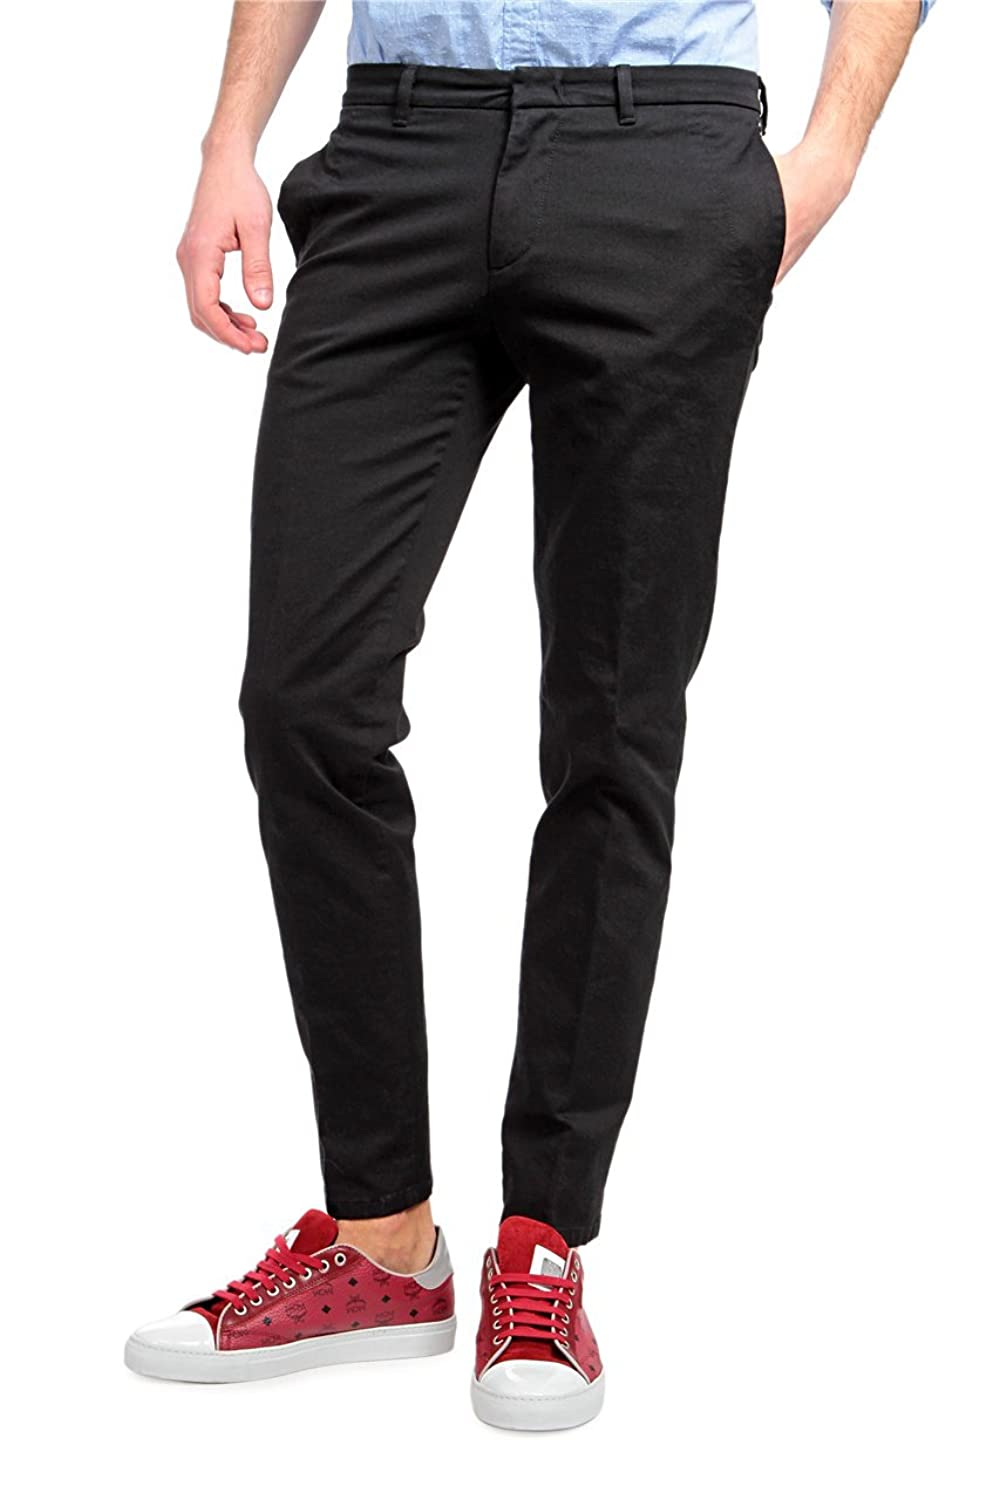 G-Design Chino Pants TERRY, Color: Black